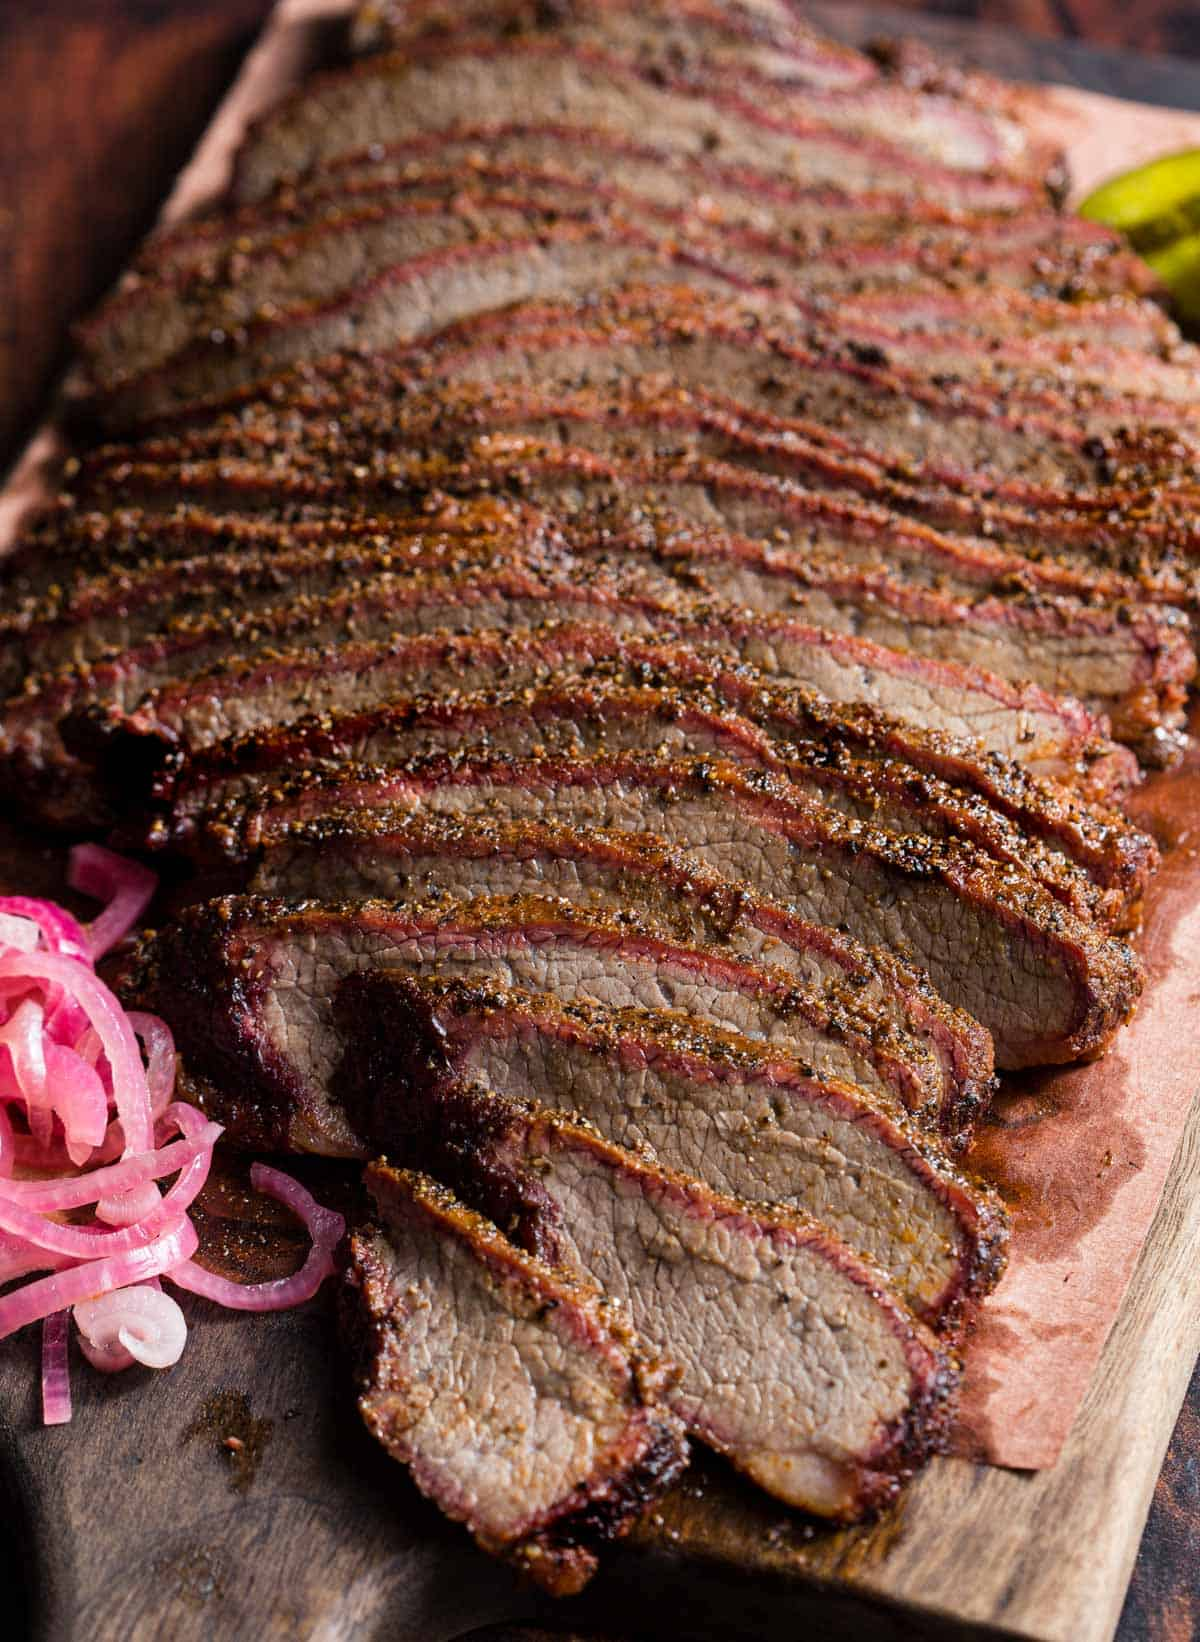 Slices of smoked brisket flat on a platter with garnishes